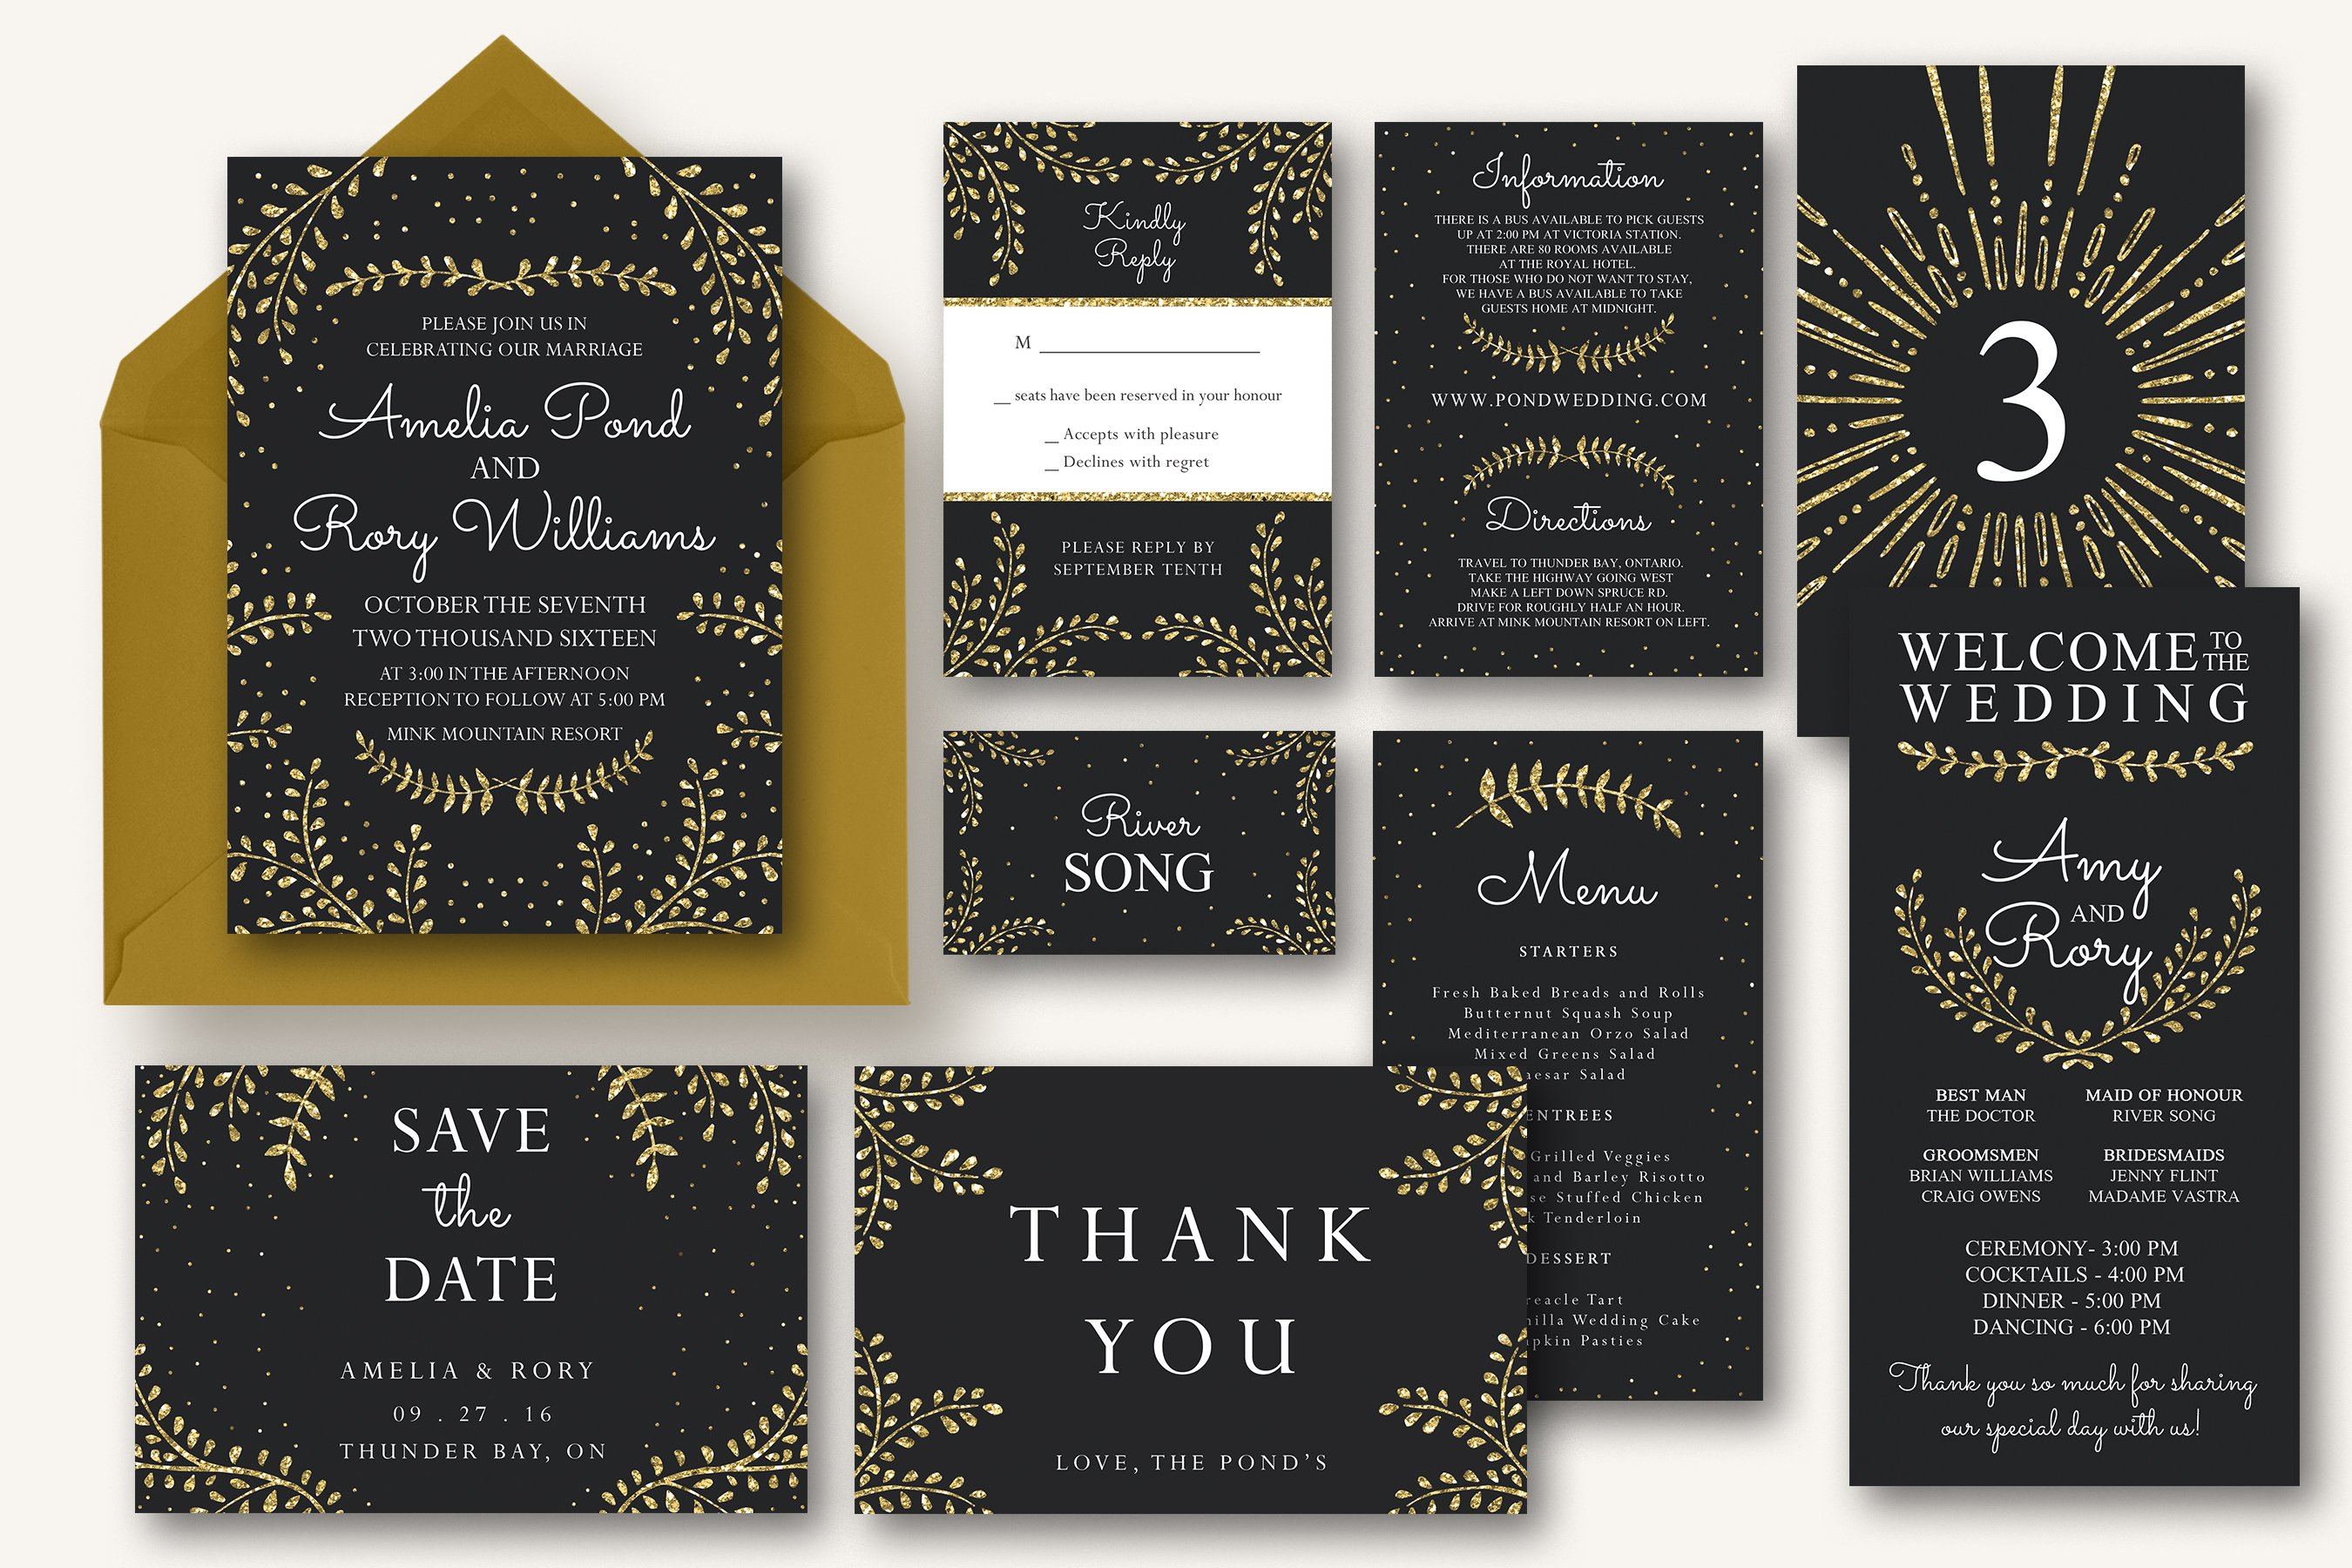 Wedding Invitation Suite Templates: New Years Wedding Invitation Suite